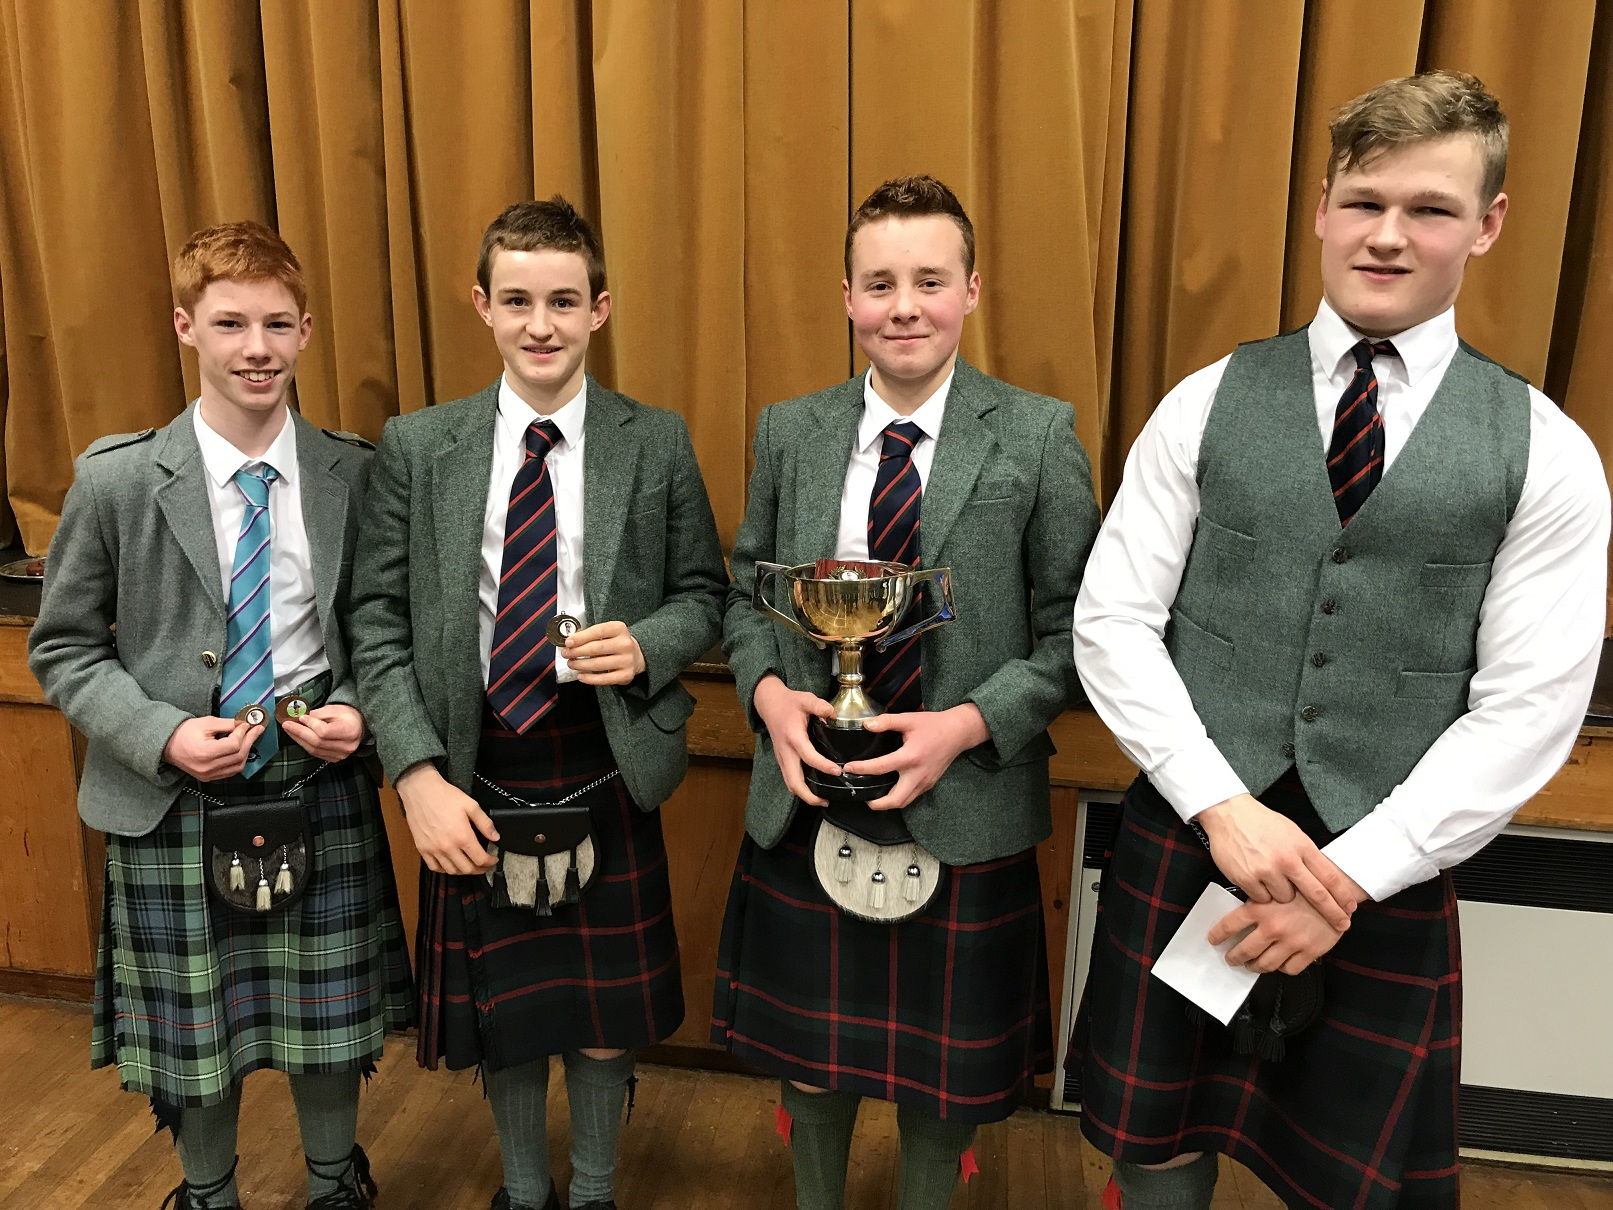 Jasper D Ed H Gregor C And Cameron B Vale Of Atholl Pipers